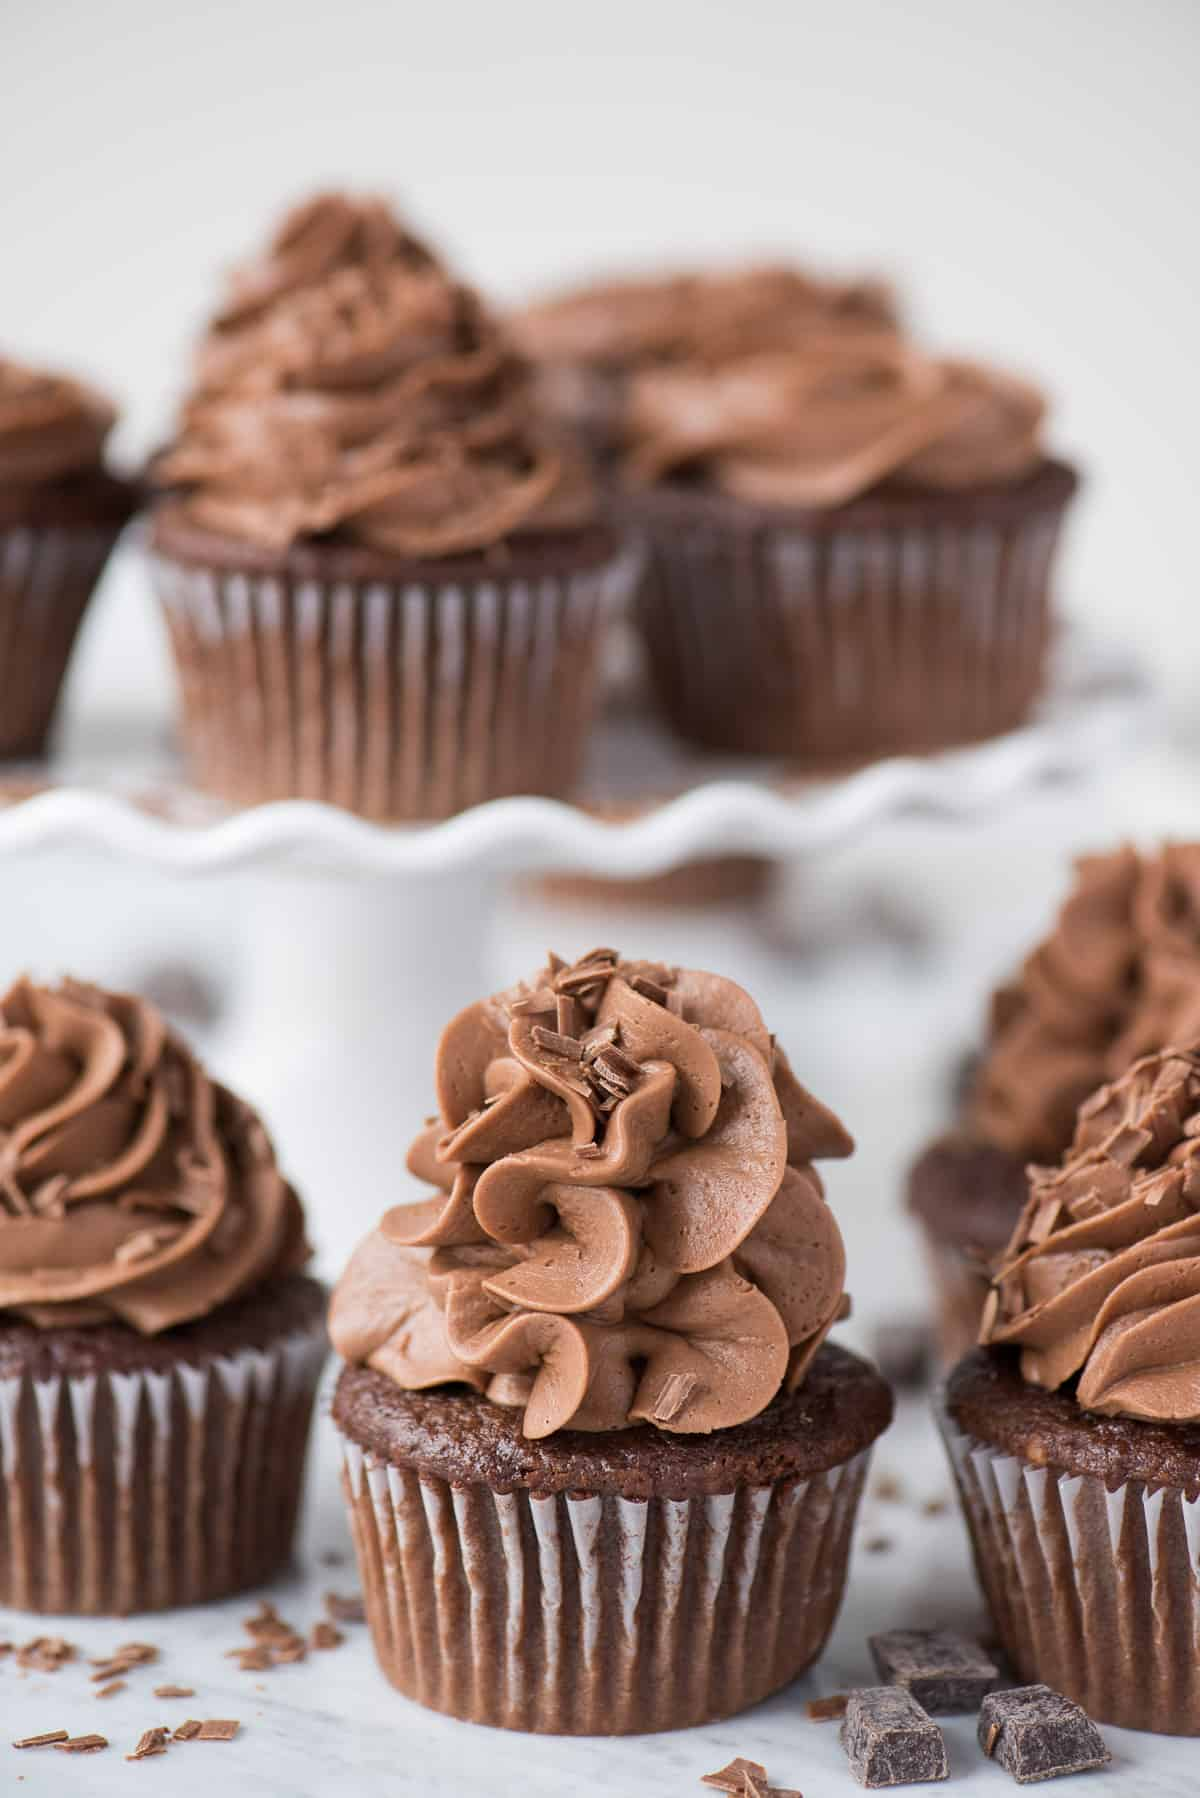 chocolate cupcakes with chocolate frosting on white background